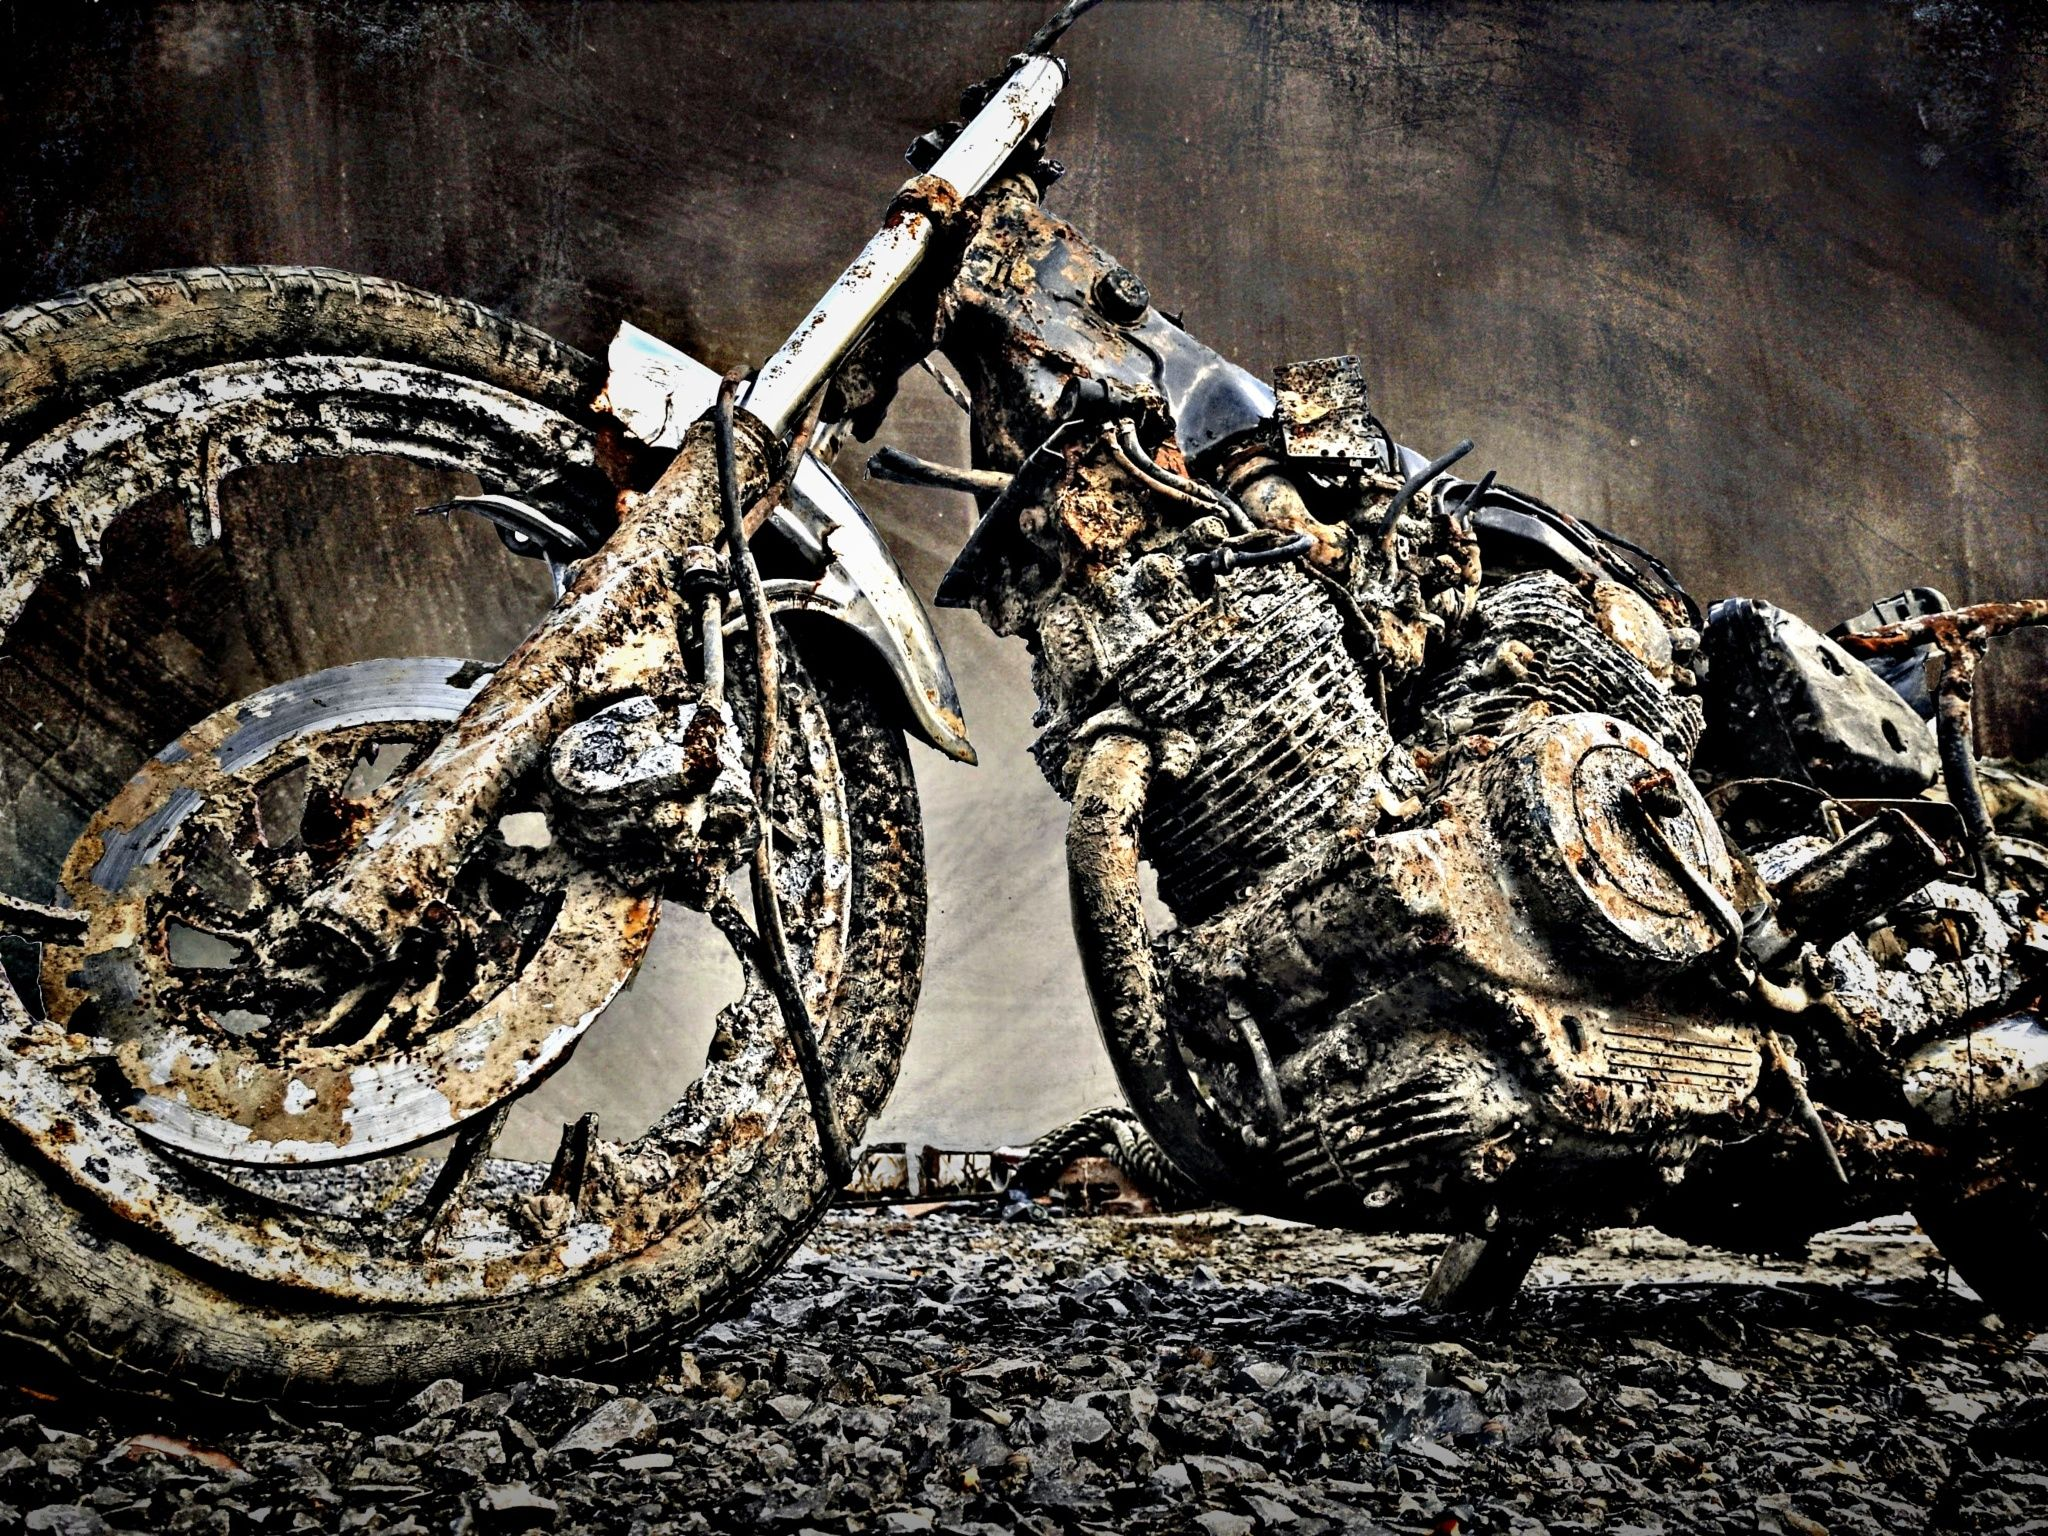 Hell On Wheels by Rich M on 500px